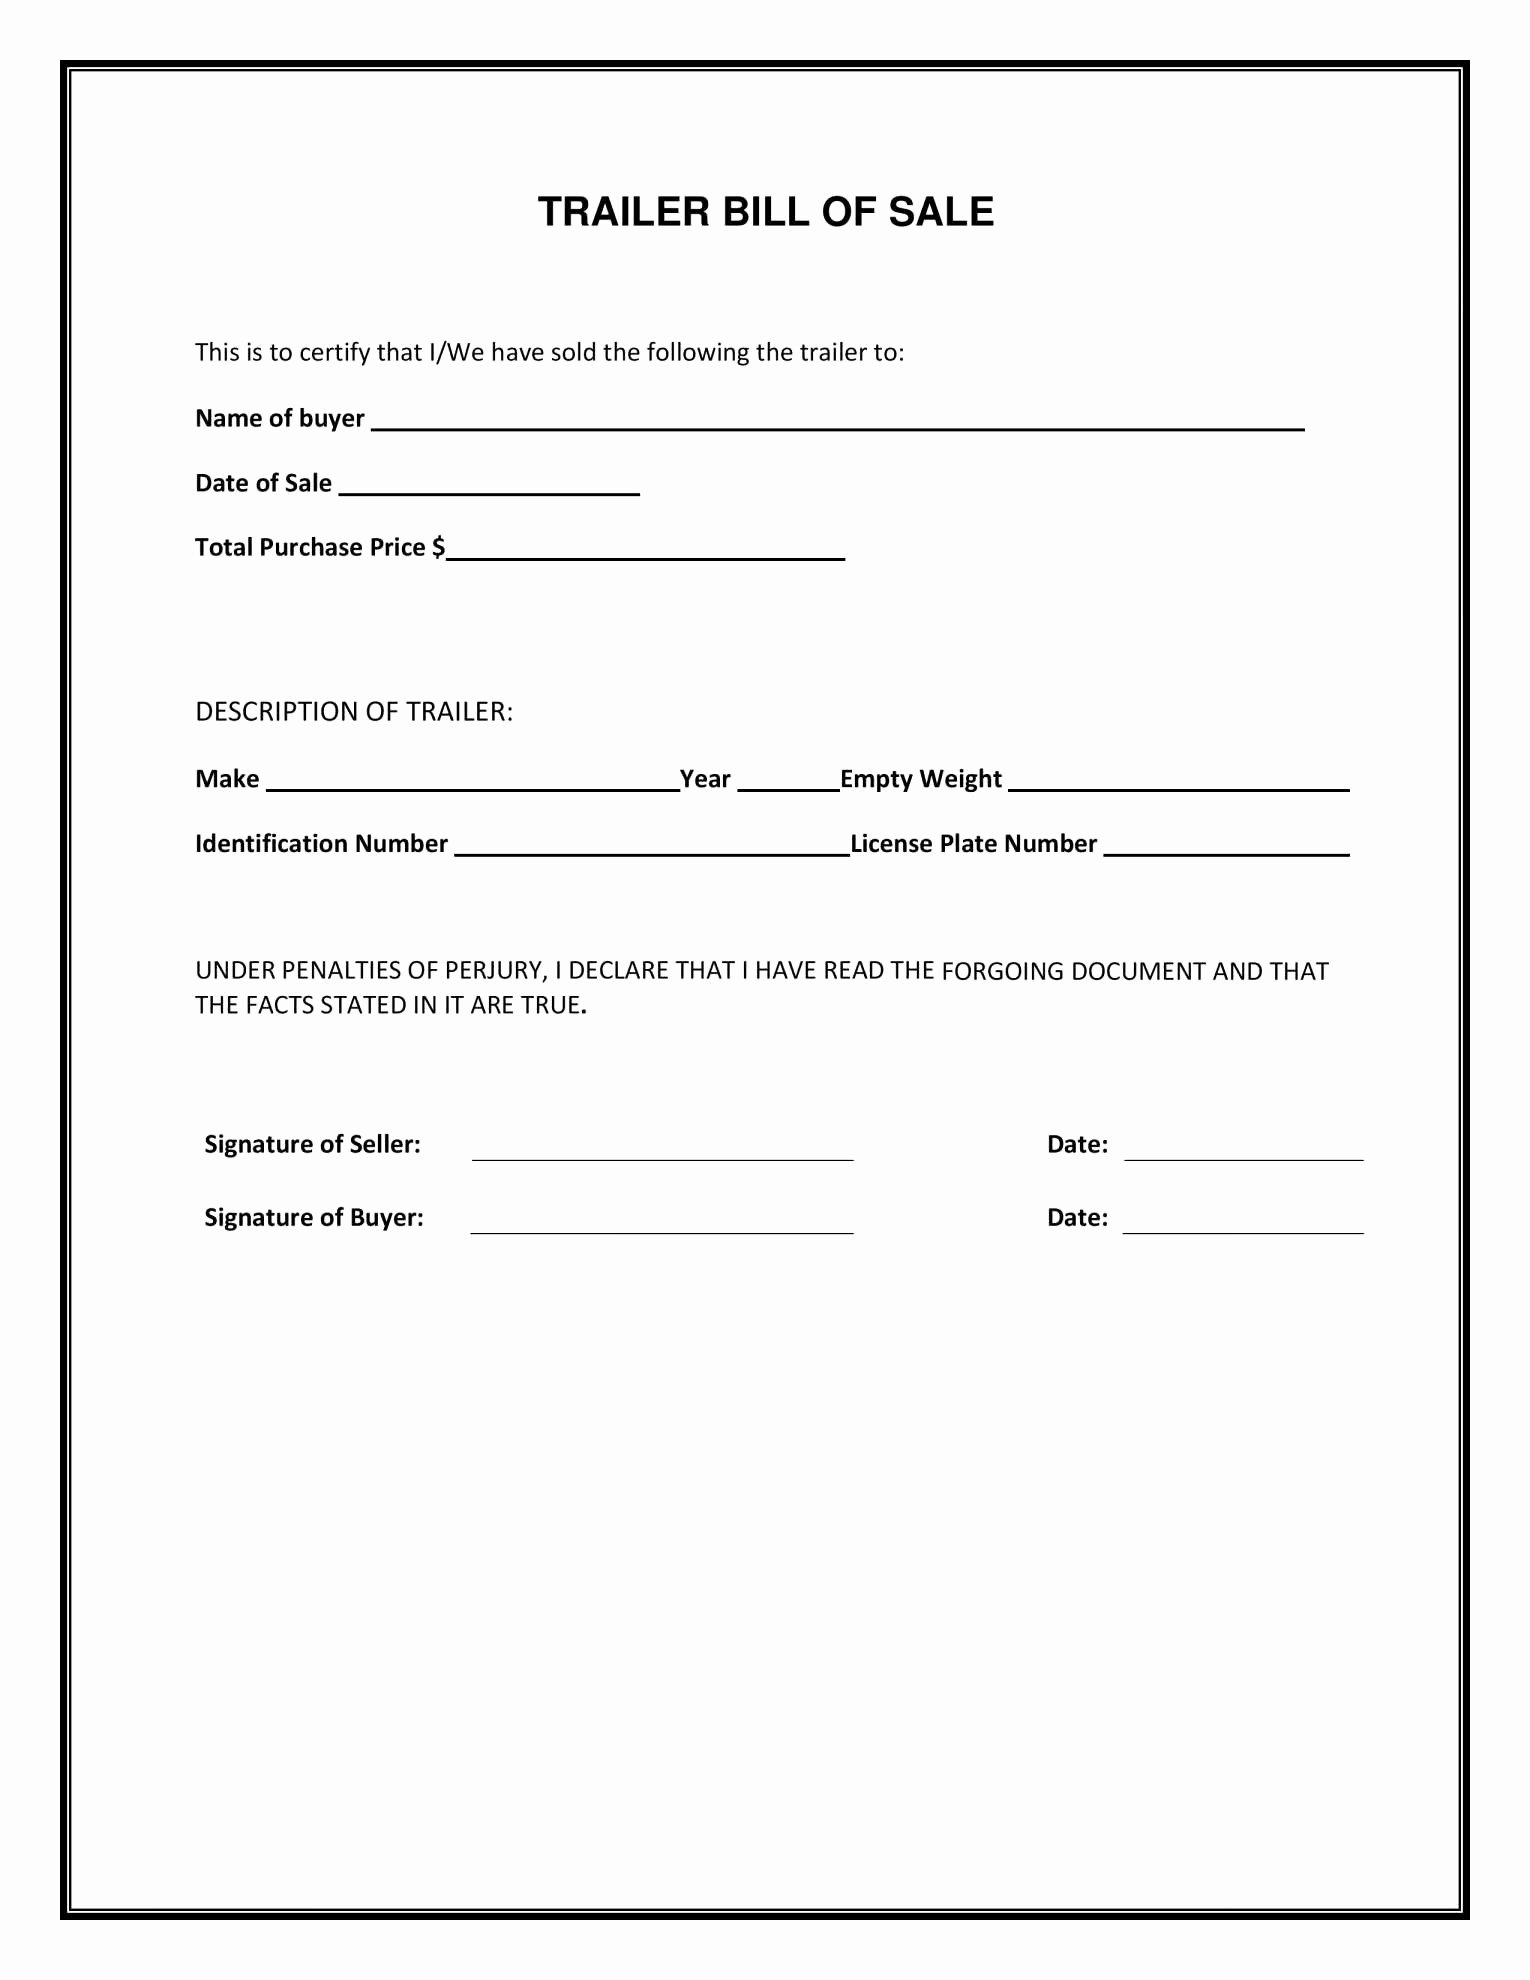 Bill Of Sale Of A Vehicle Awesome Simple Weekly Timesheet Template Missionconvergence